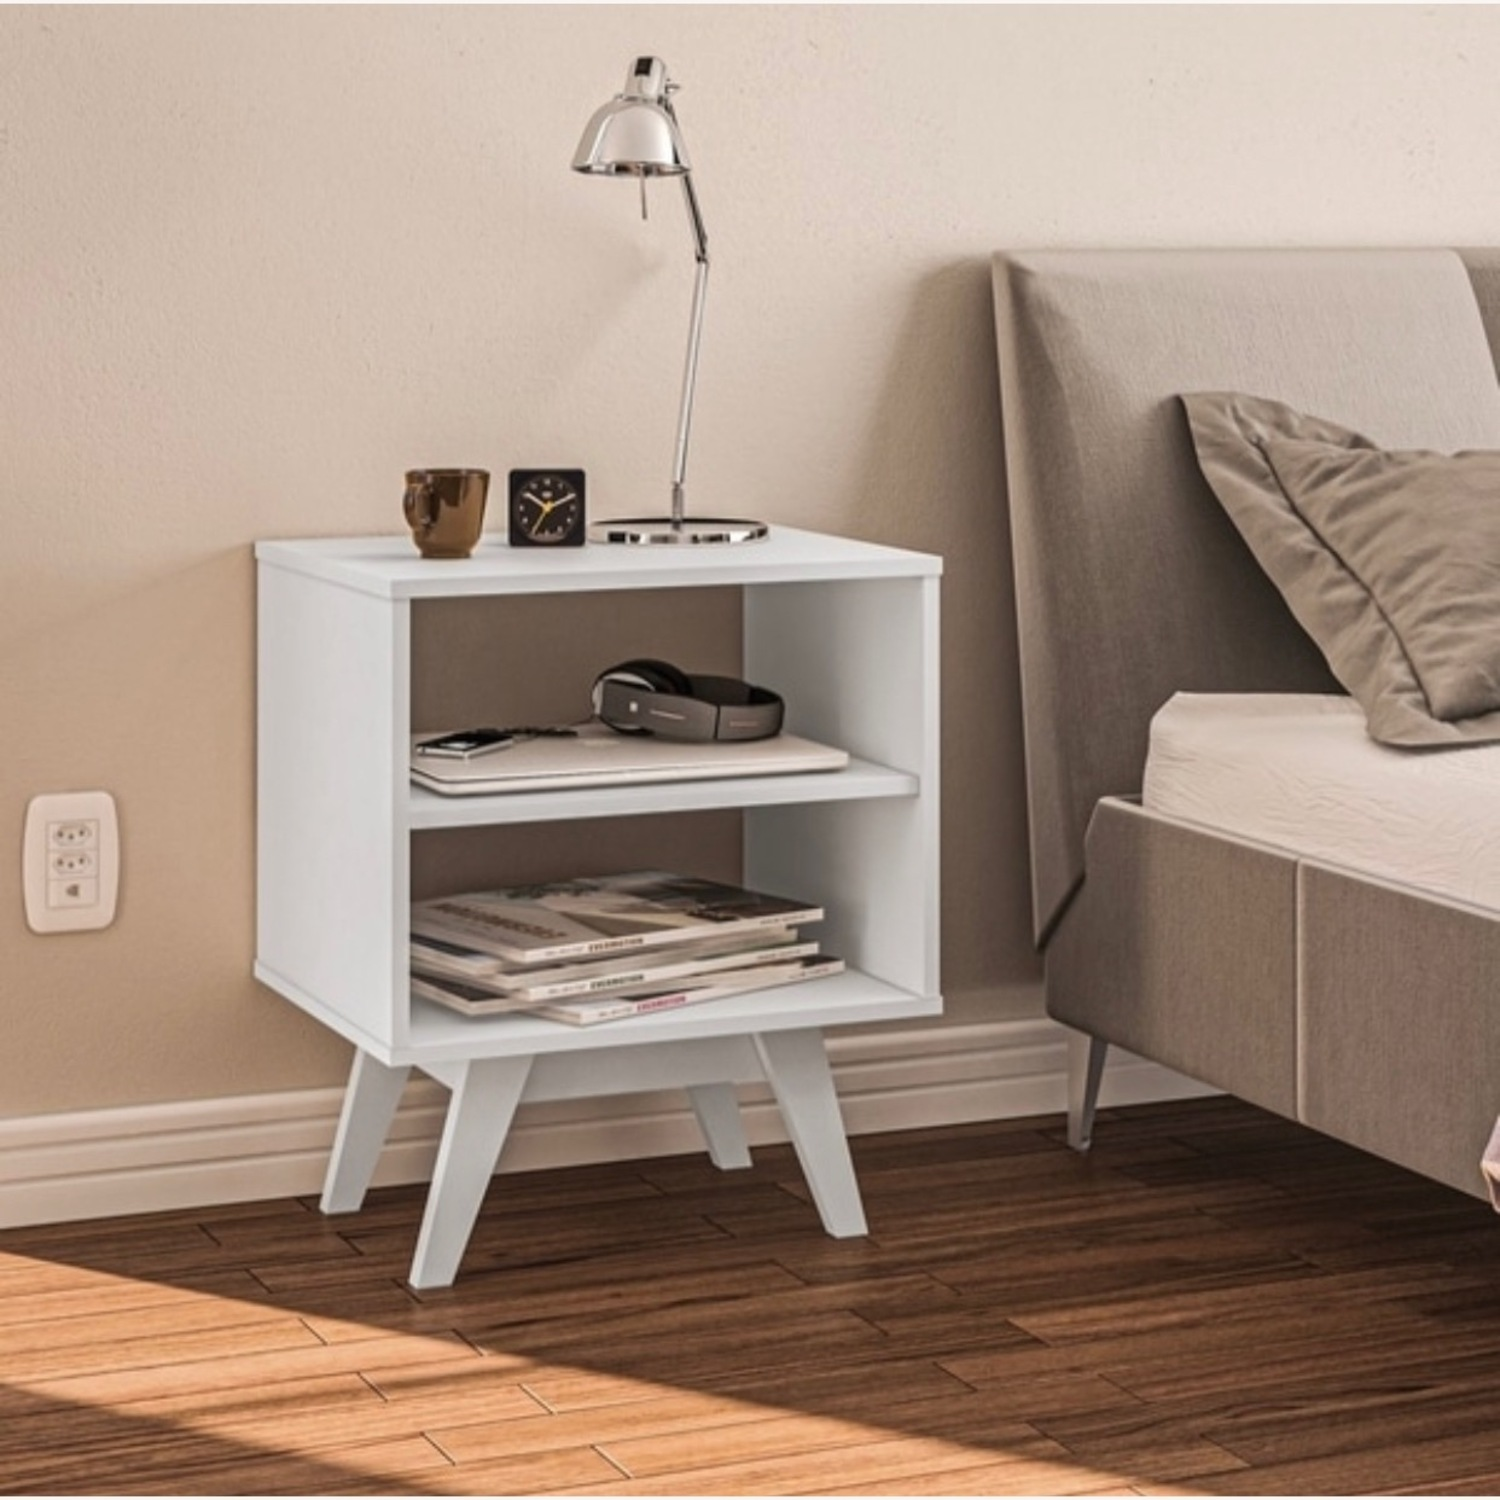 White Night Stands / End Tables Set of 2 - image-4